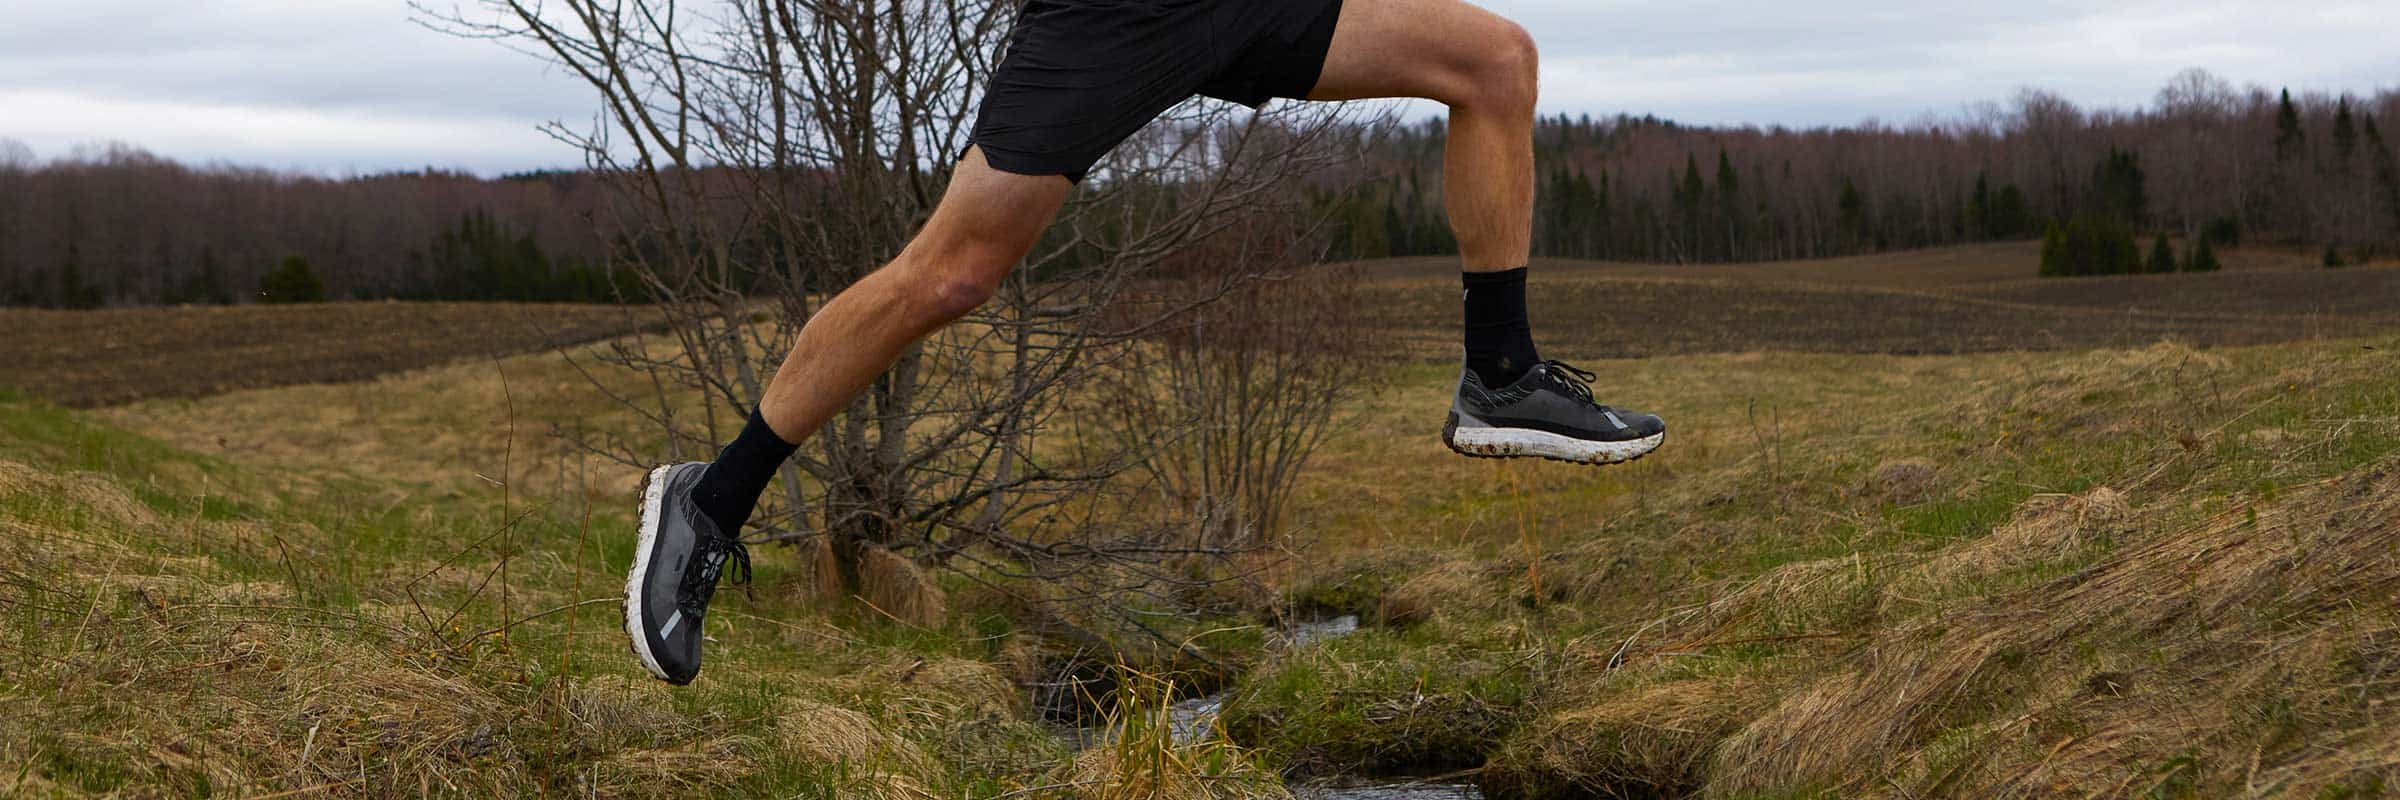 Sustainable Performance: norda Trail Running Shoes